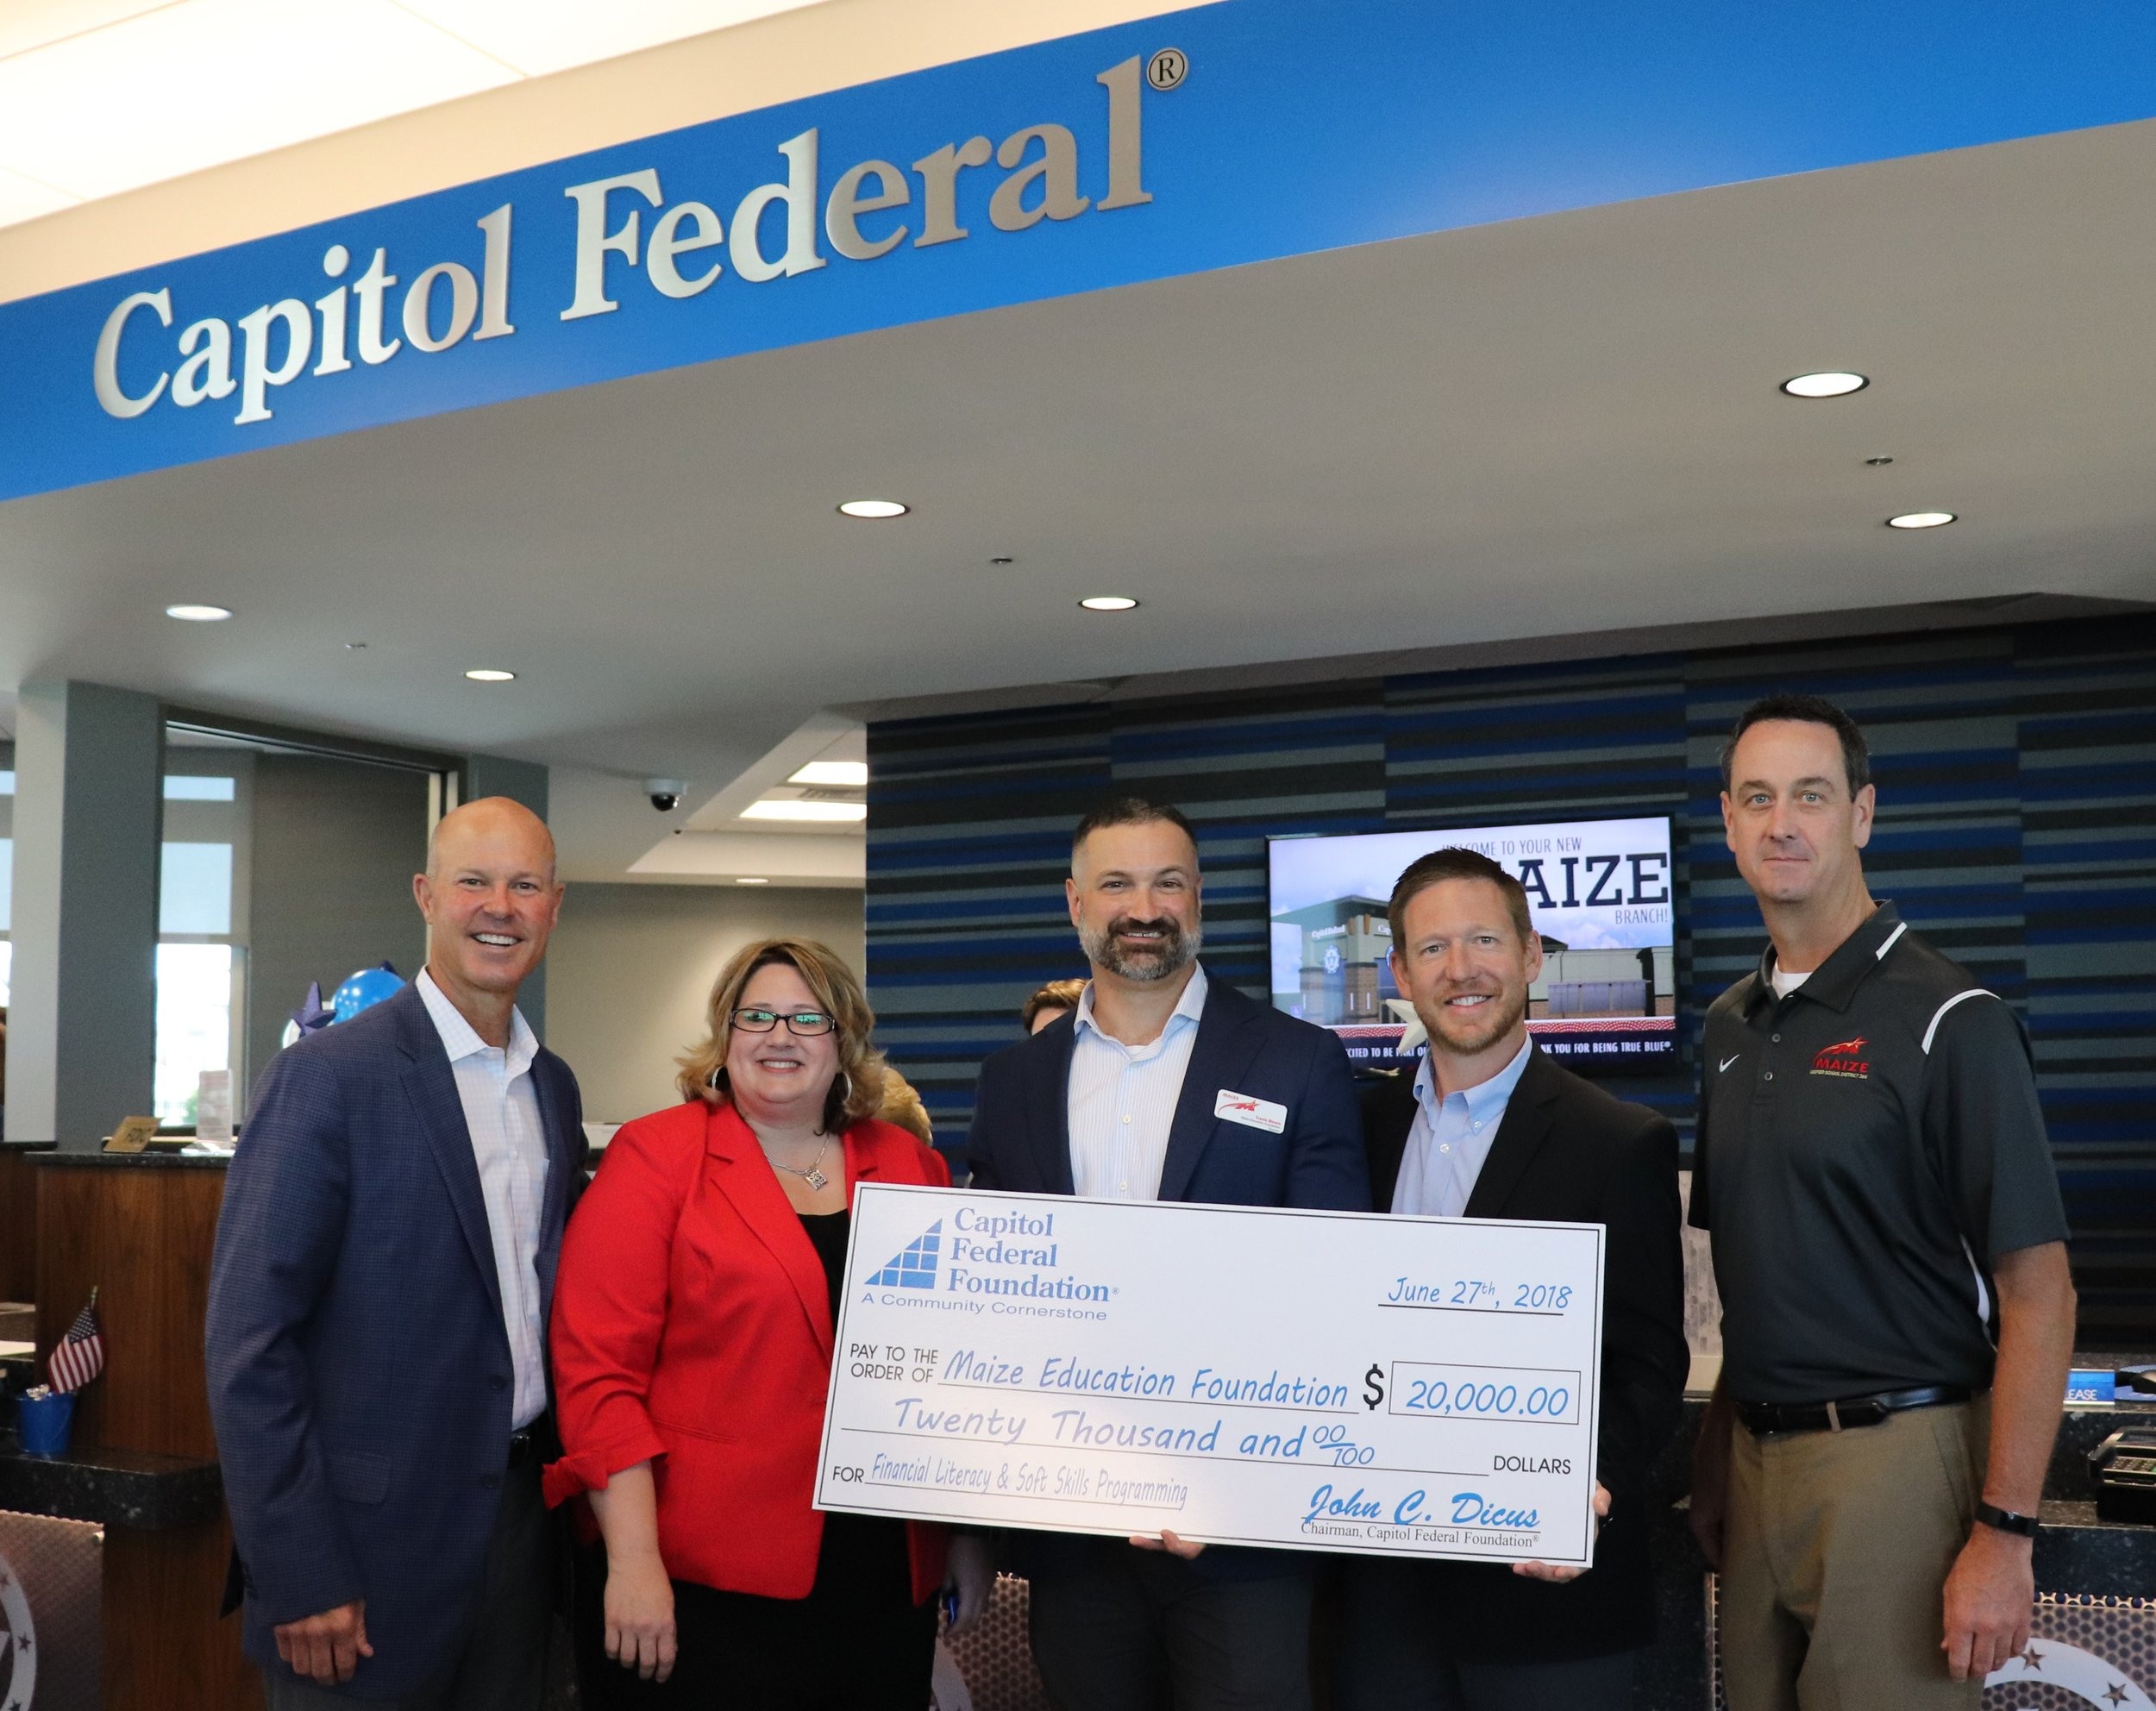 Pictured from left to right: Capitol Federal® CEO John Dicus, Capitol Federal® Branch Manager Jennifer Gorman, Travis Bloom, Maize Education Foundation Vice President Brandon Brungardt, and Maize Superintendent of Schools Dr. Chad Higgins.